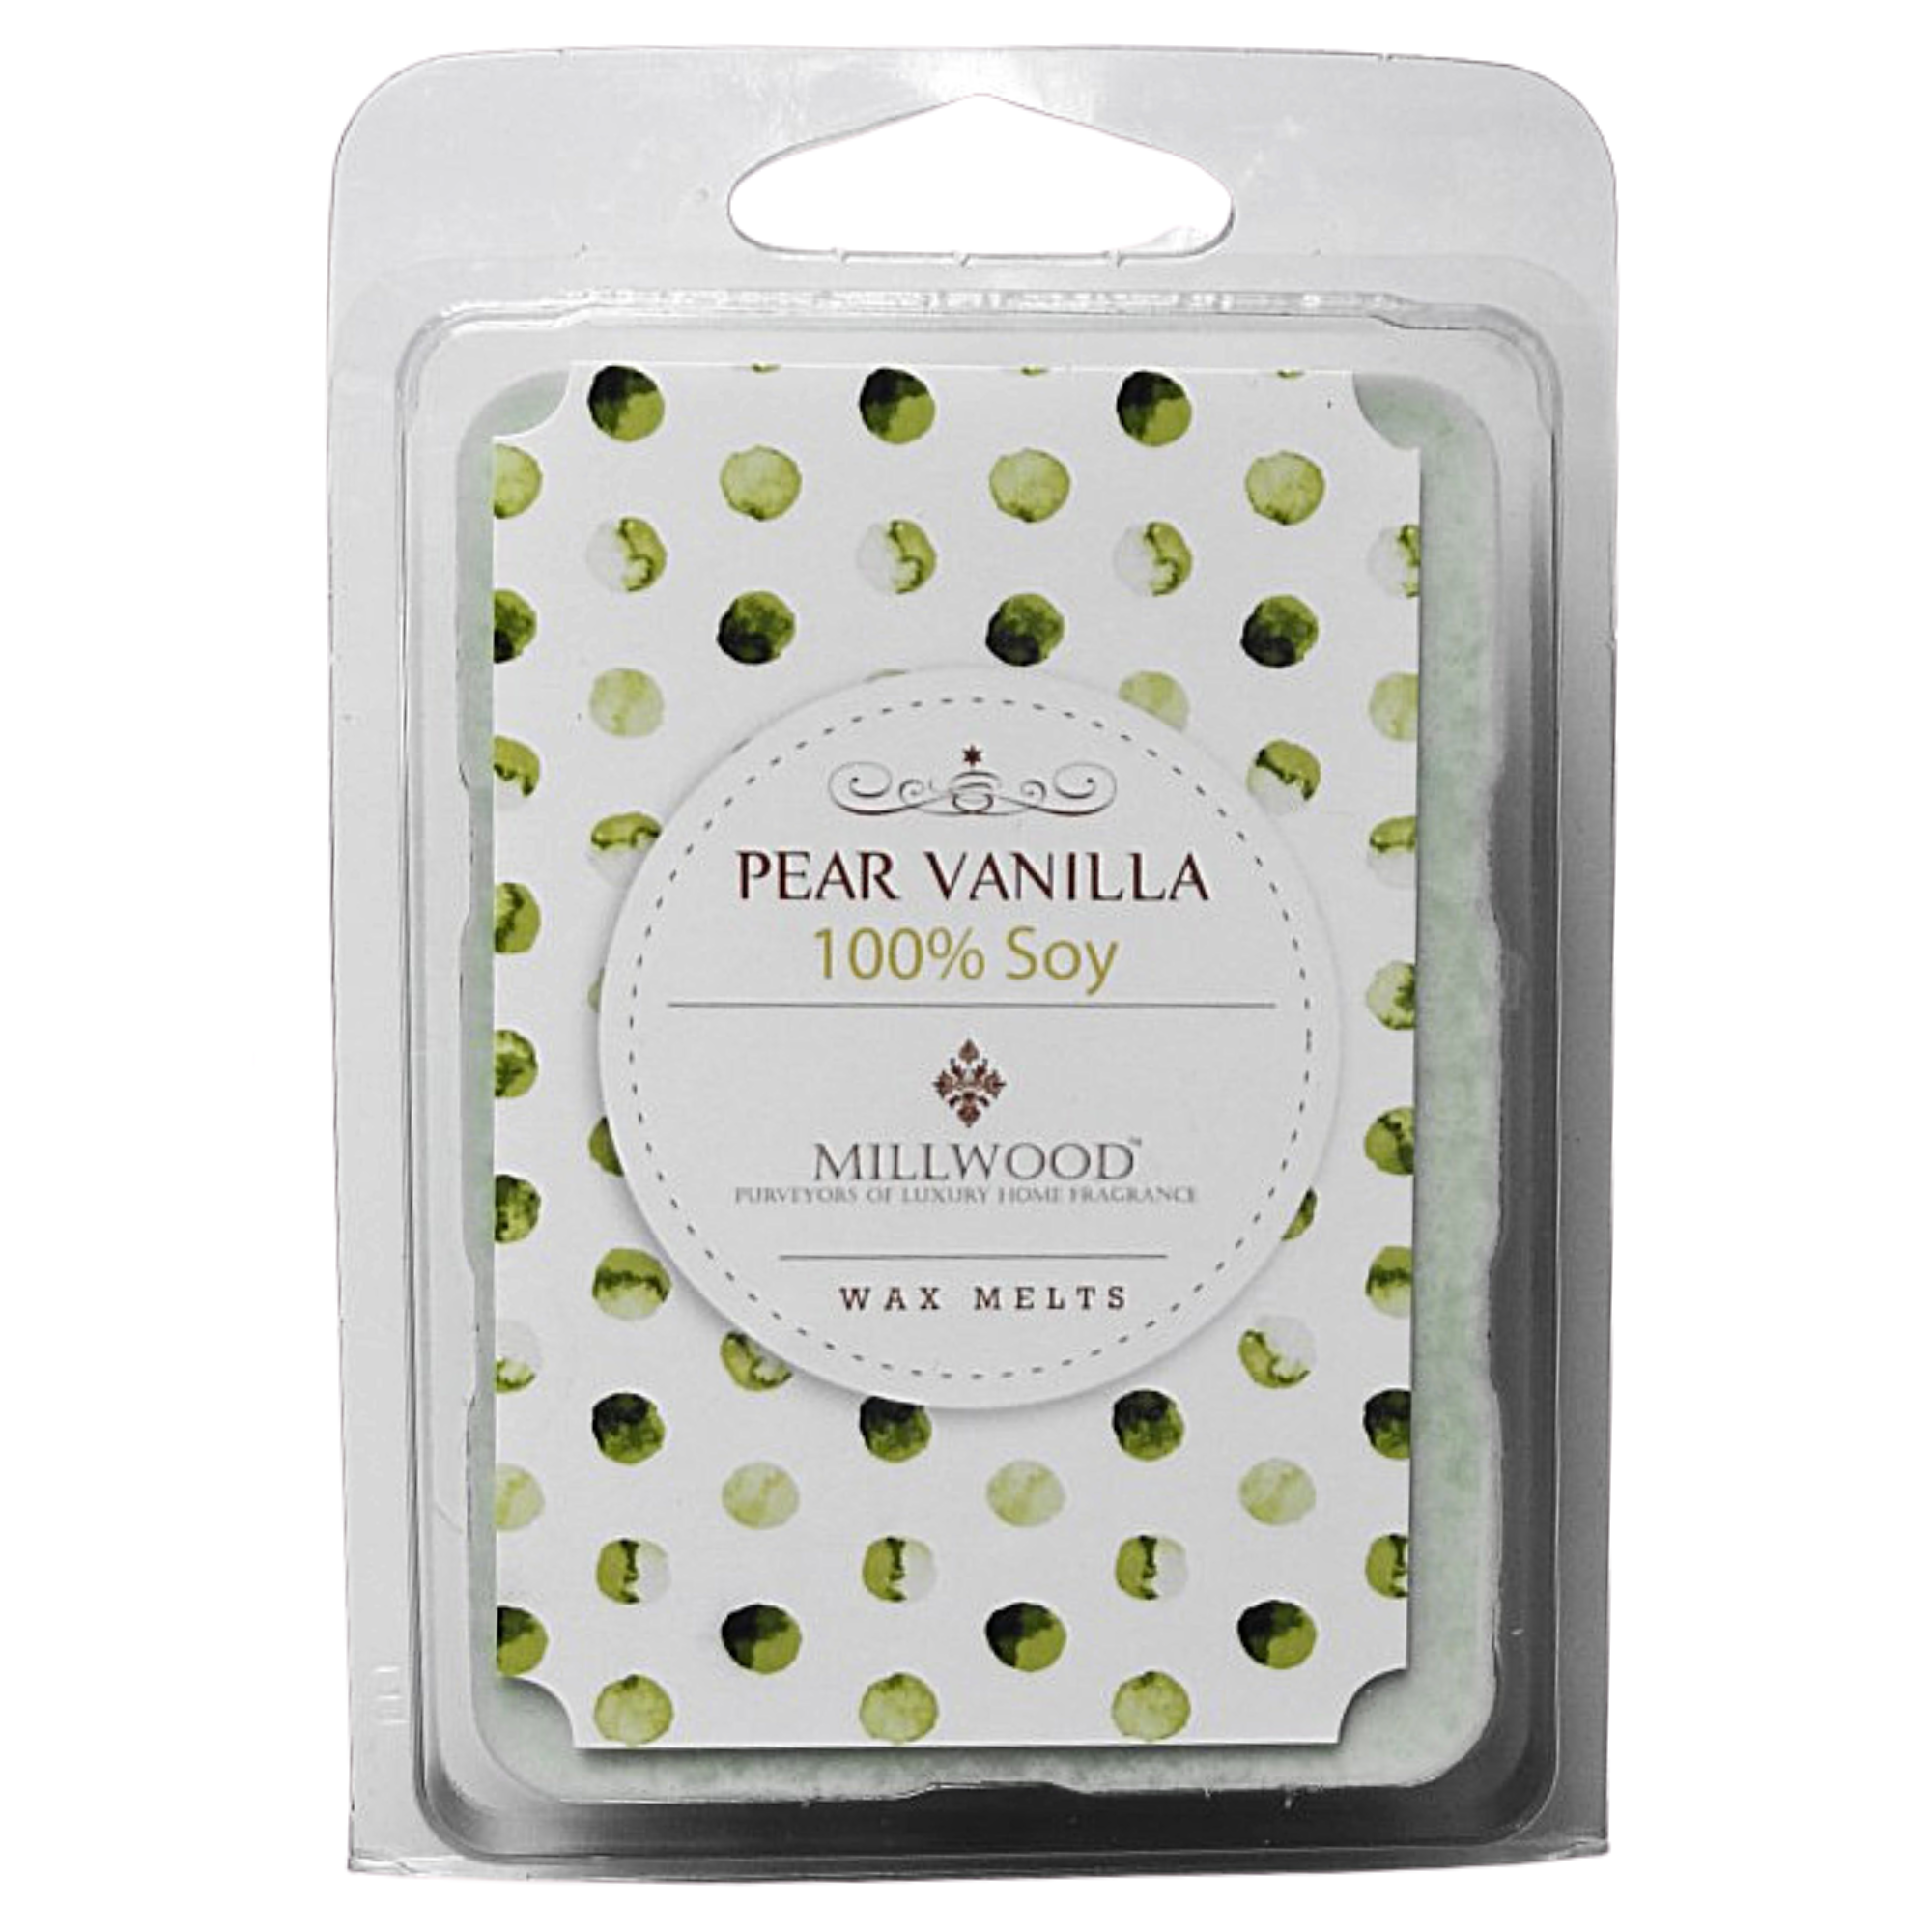 Pear Vanilla Wax Melts